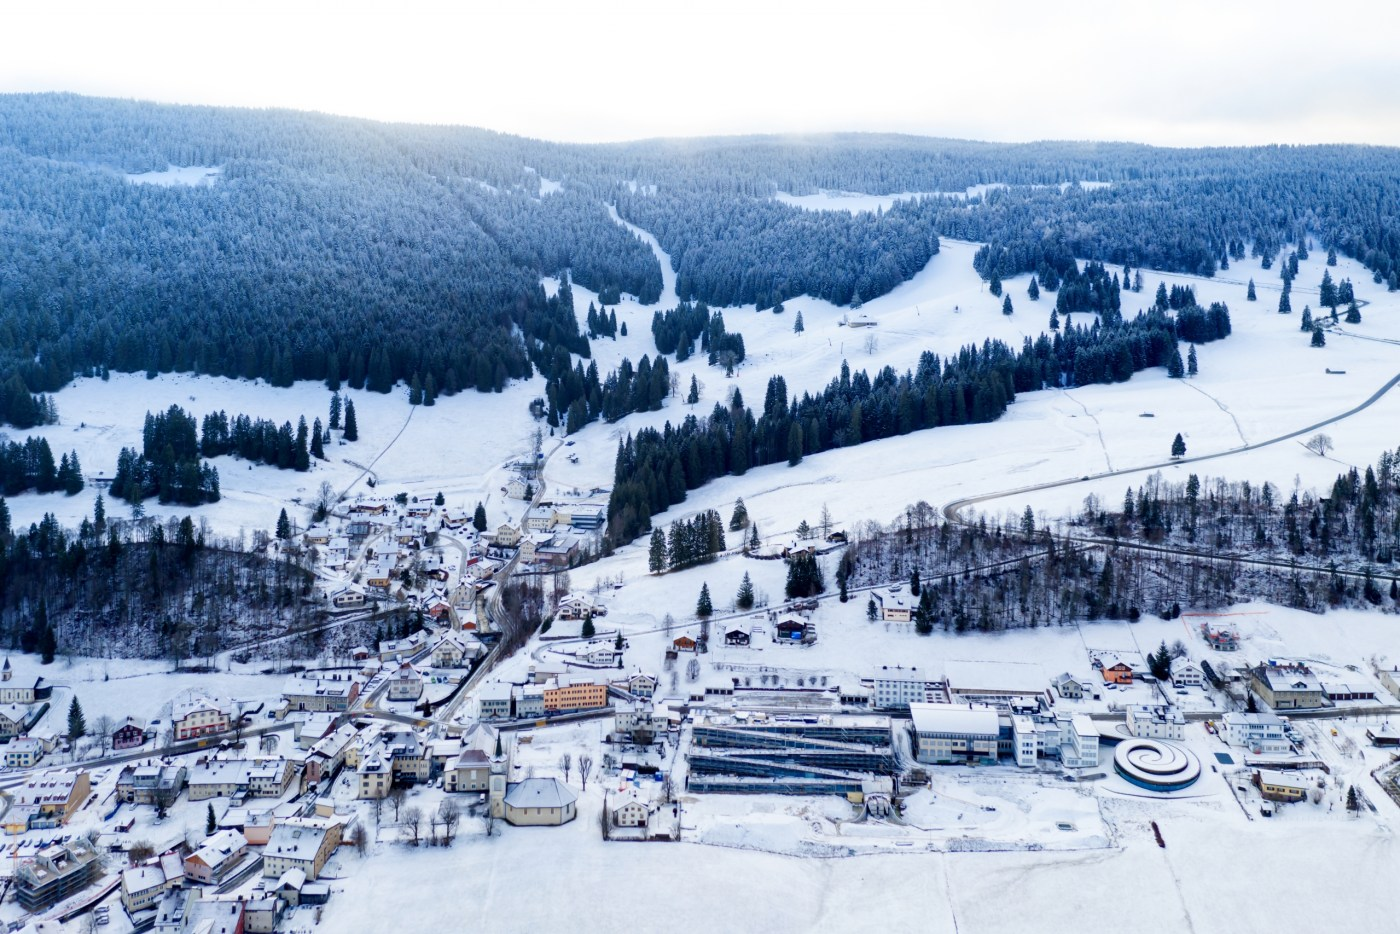 Looking down on Le Brassus and the Vallee de Joux